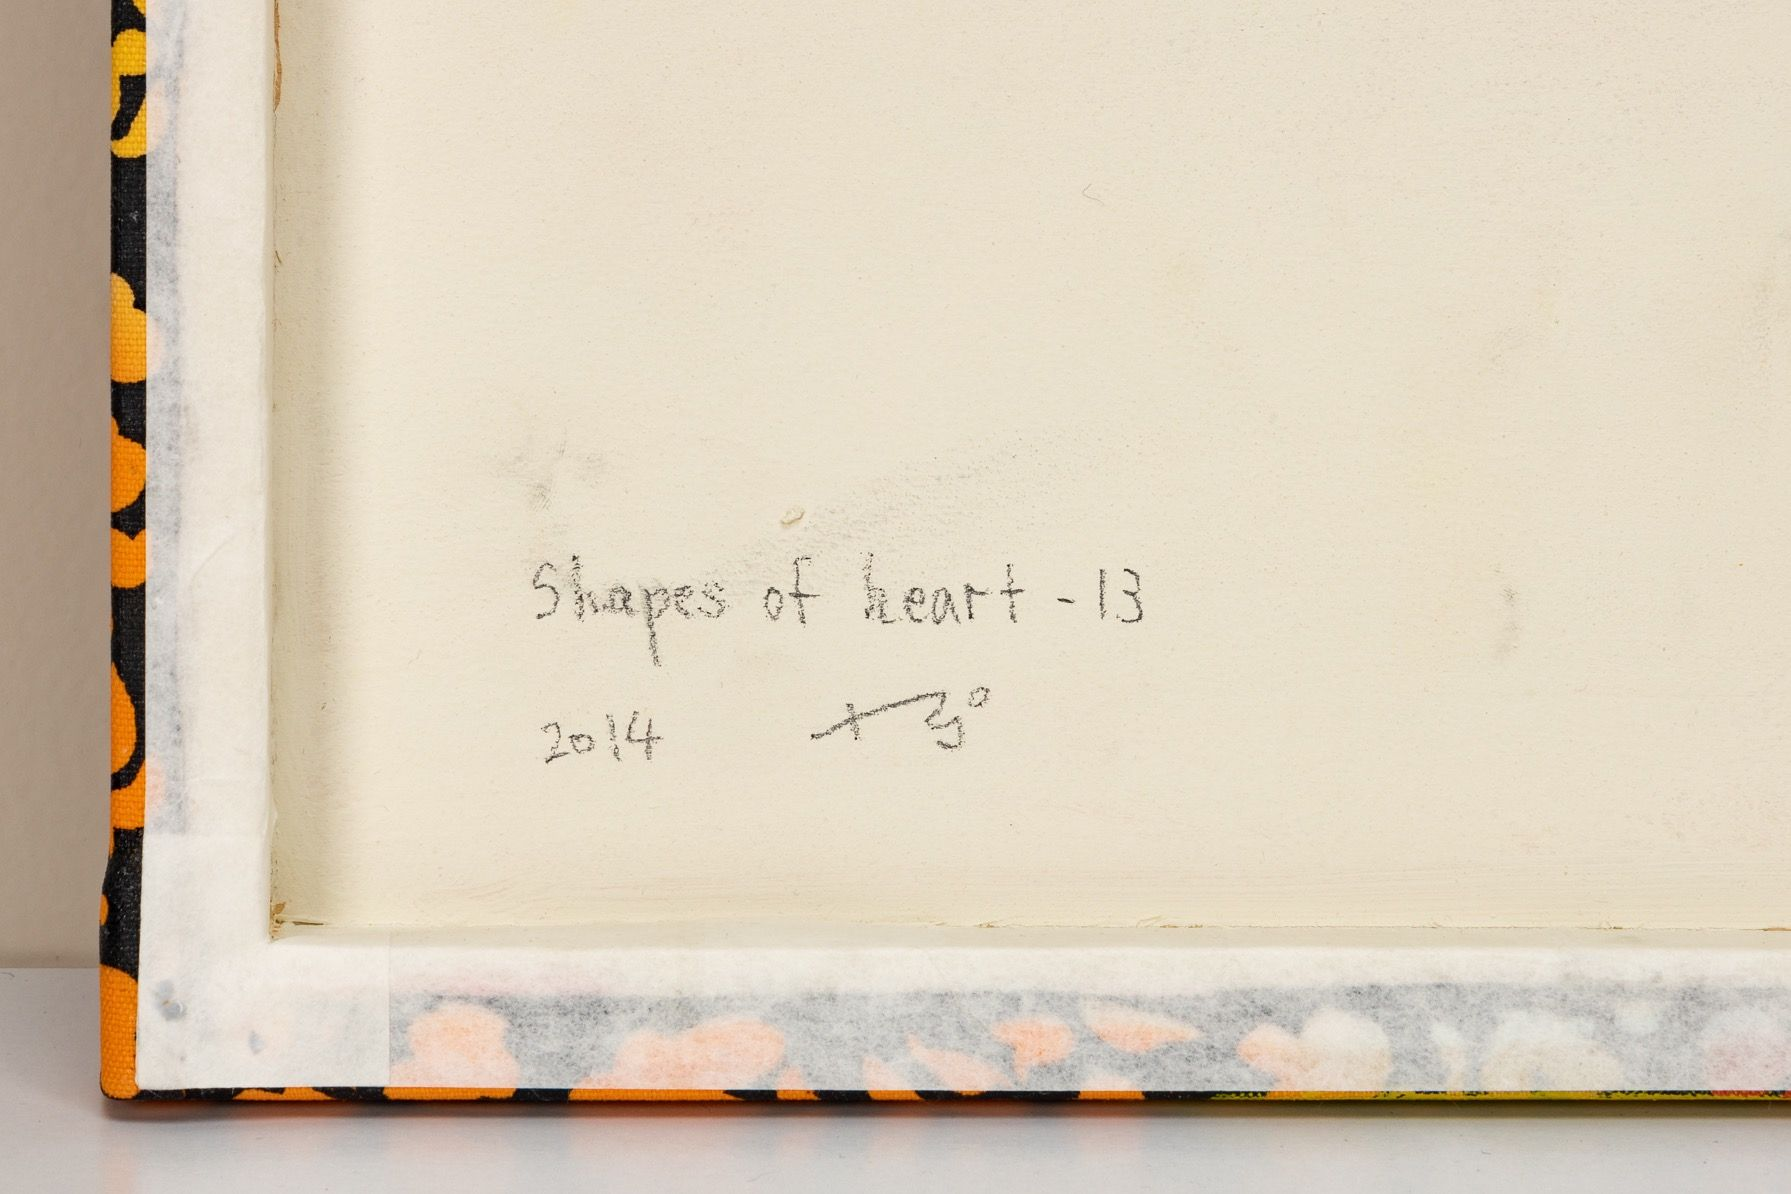 Shapes of heart_13